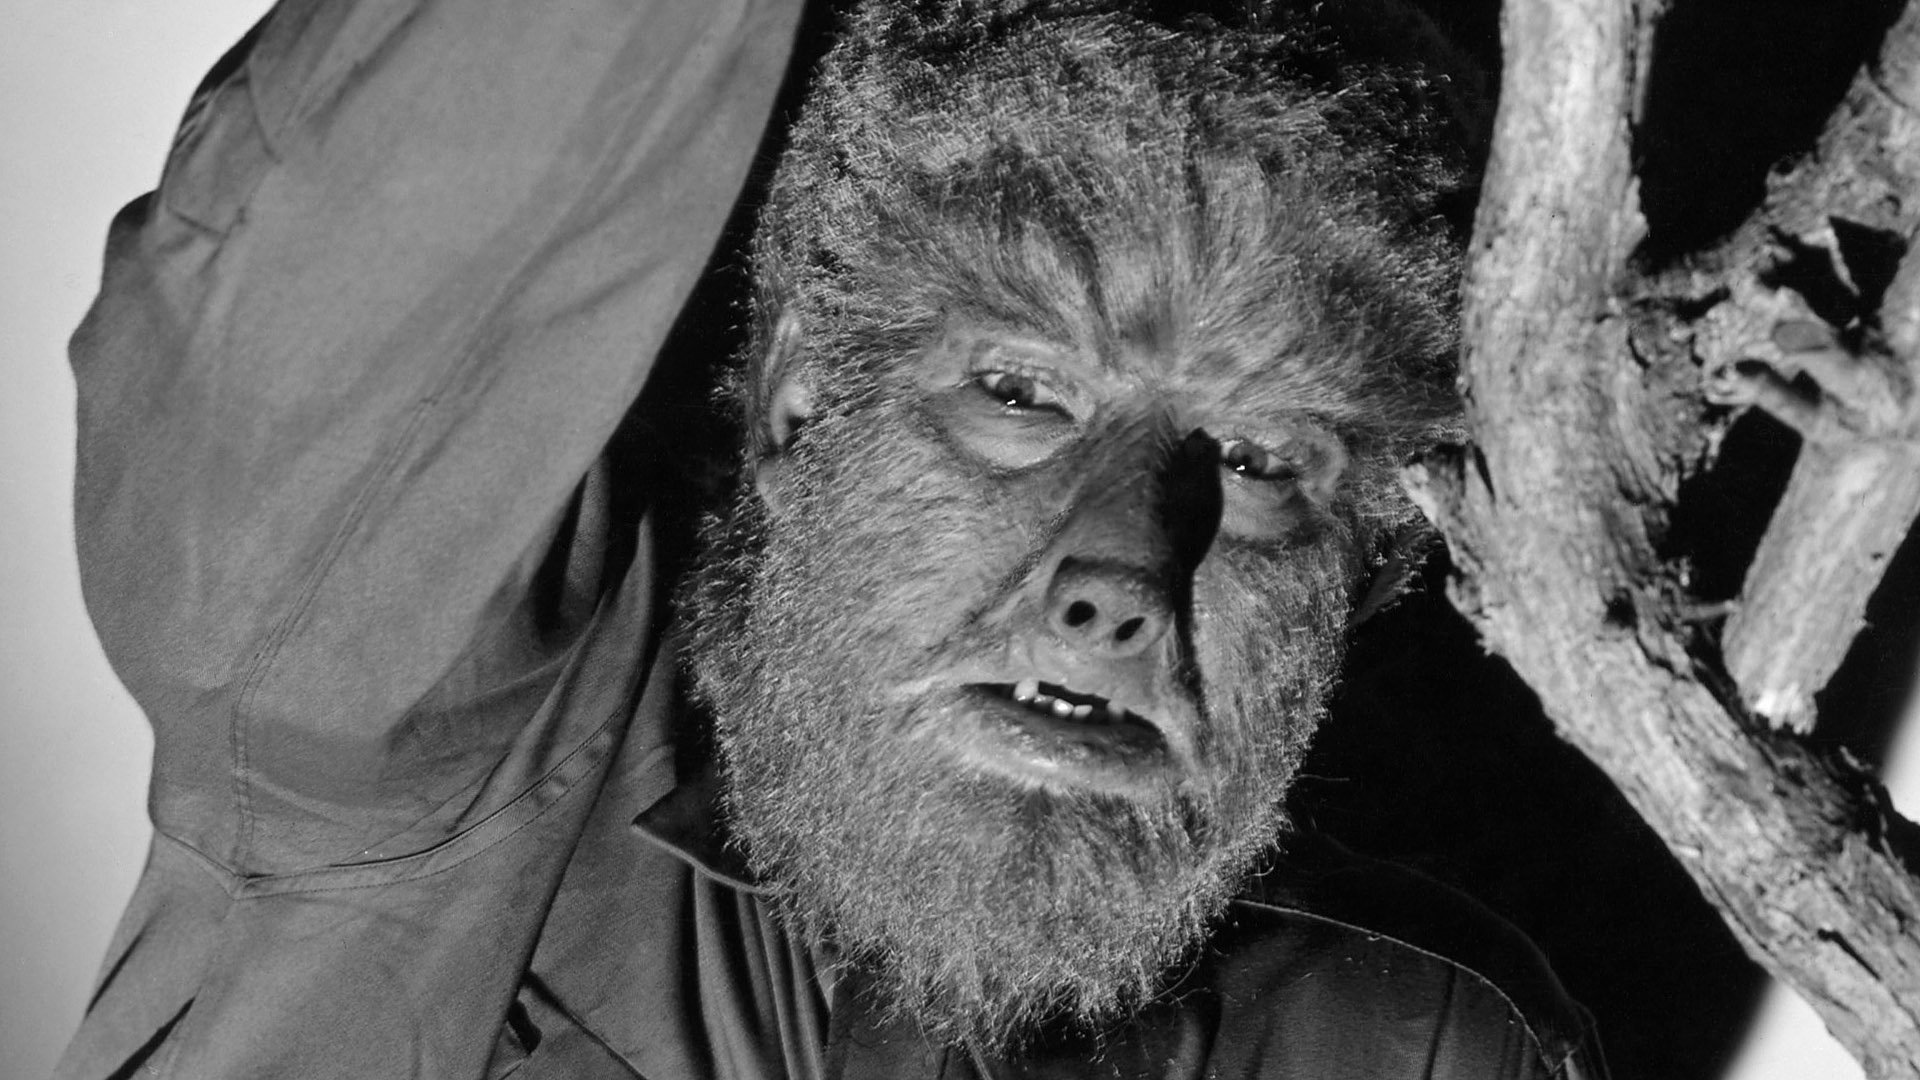 Universal Plans To Reboot The Wolf Man Again Fanboycom 1920x1080